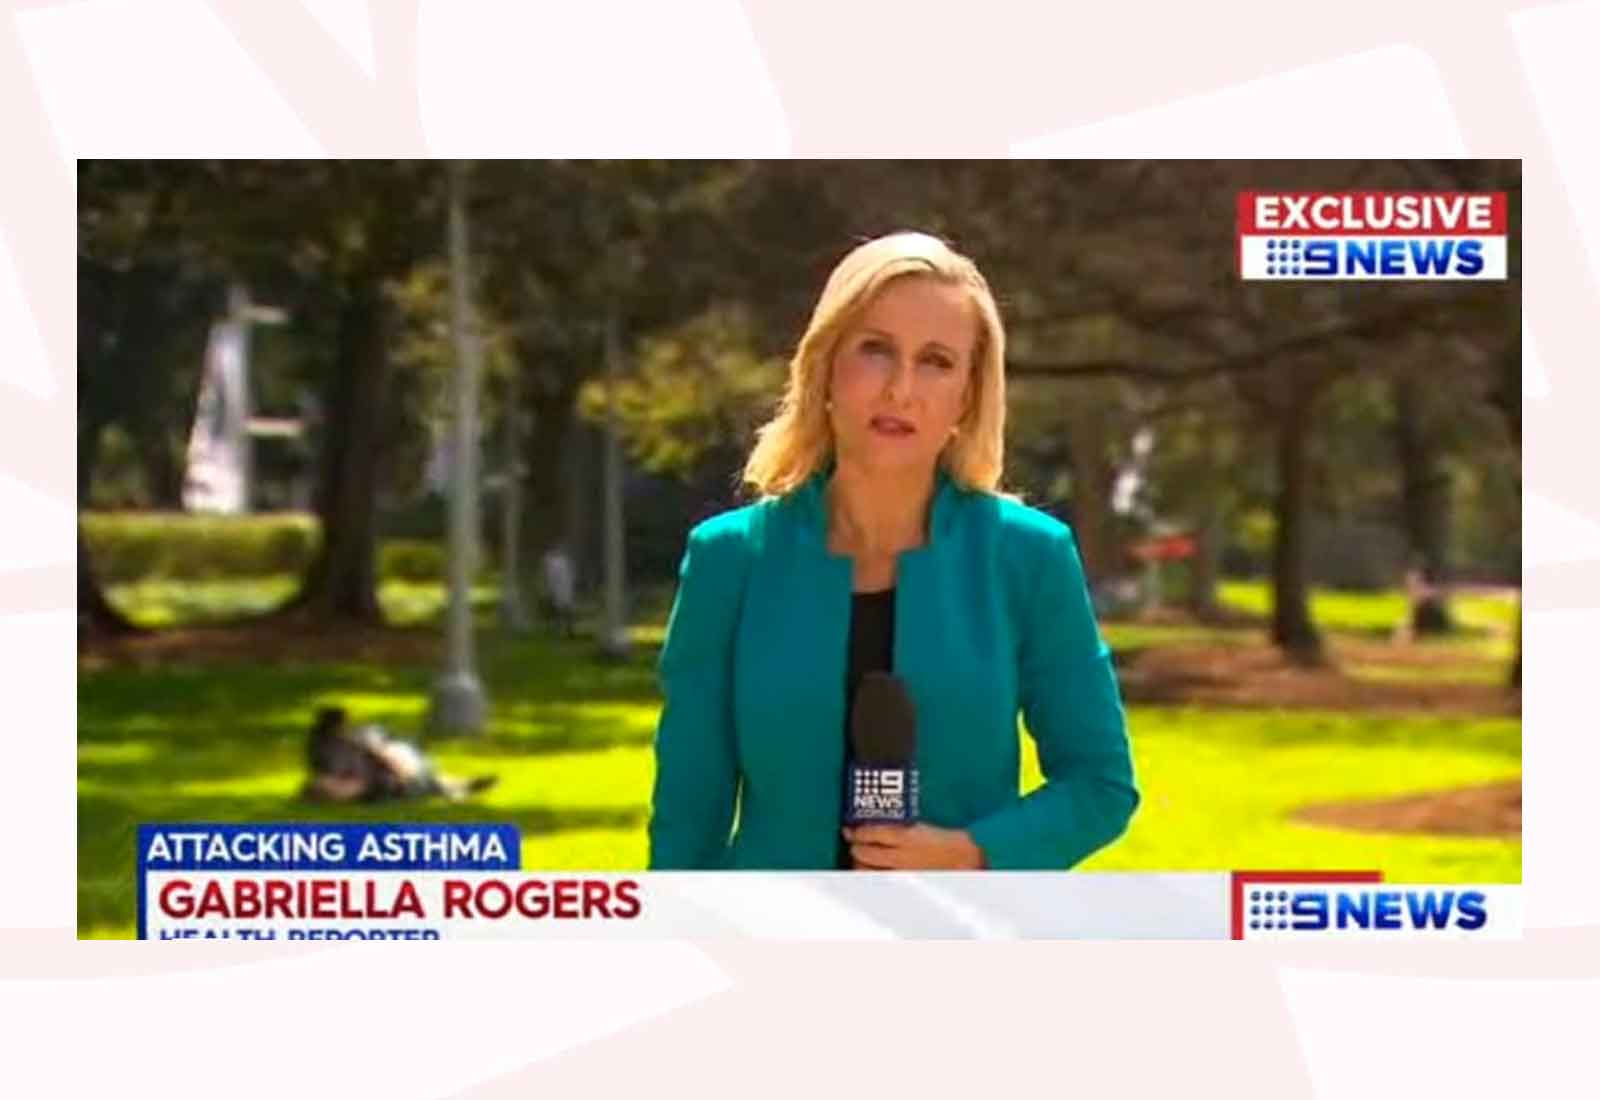 Channel 9 News: New mild asthma medication